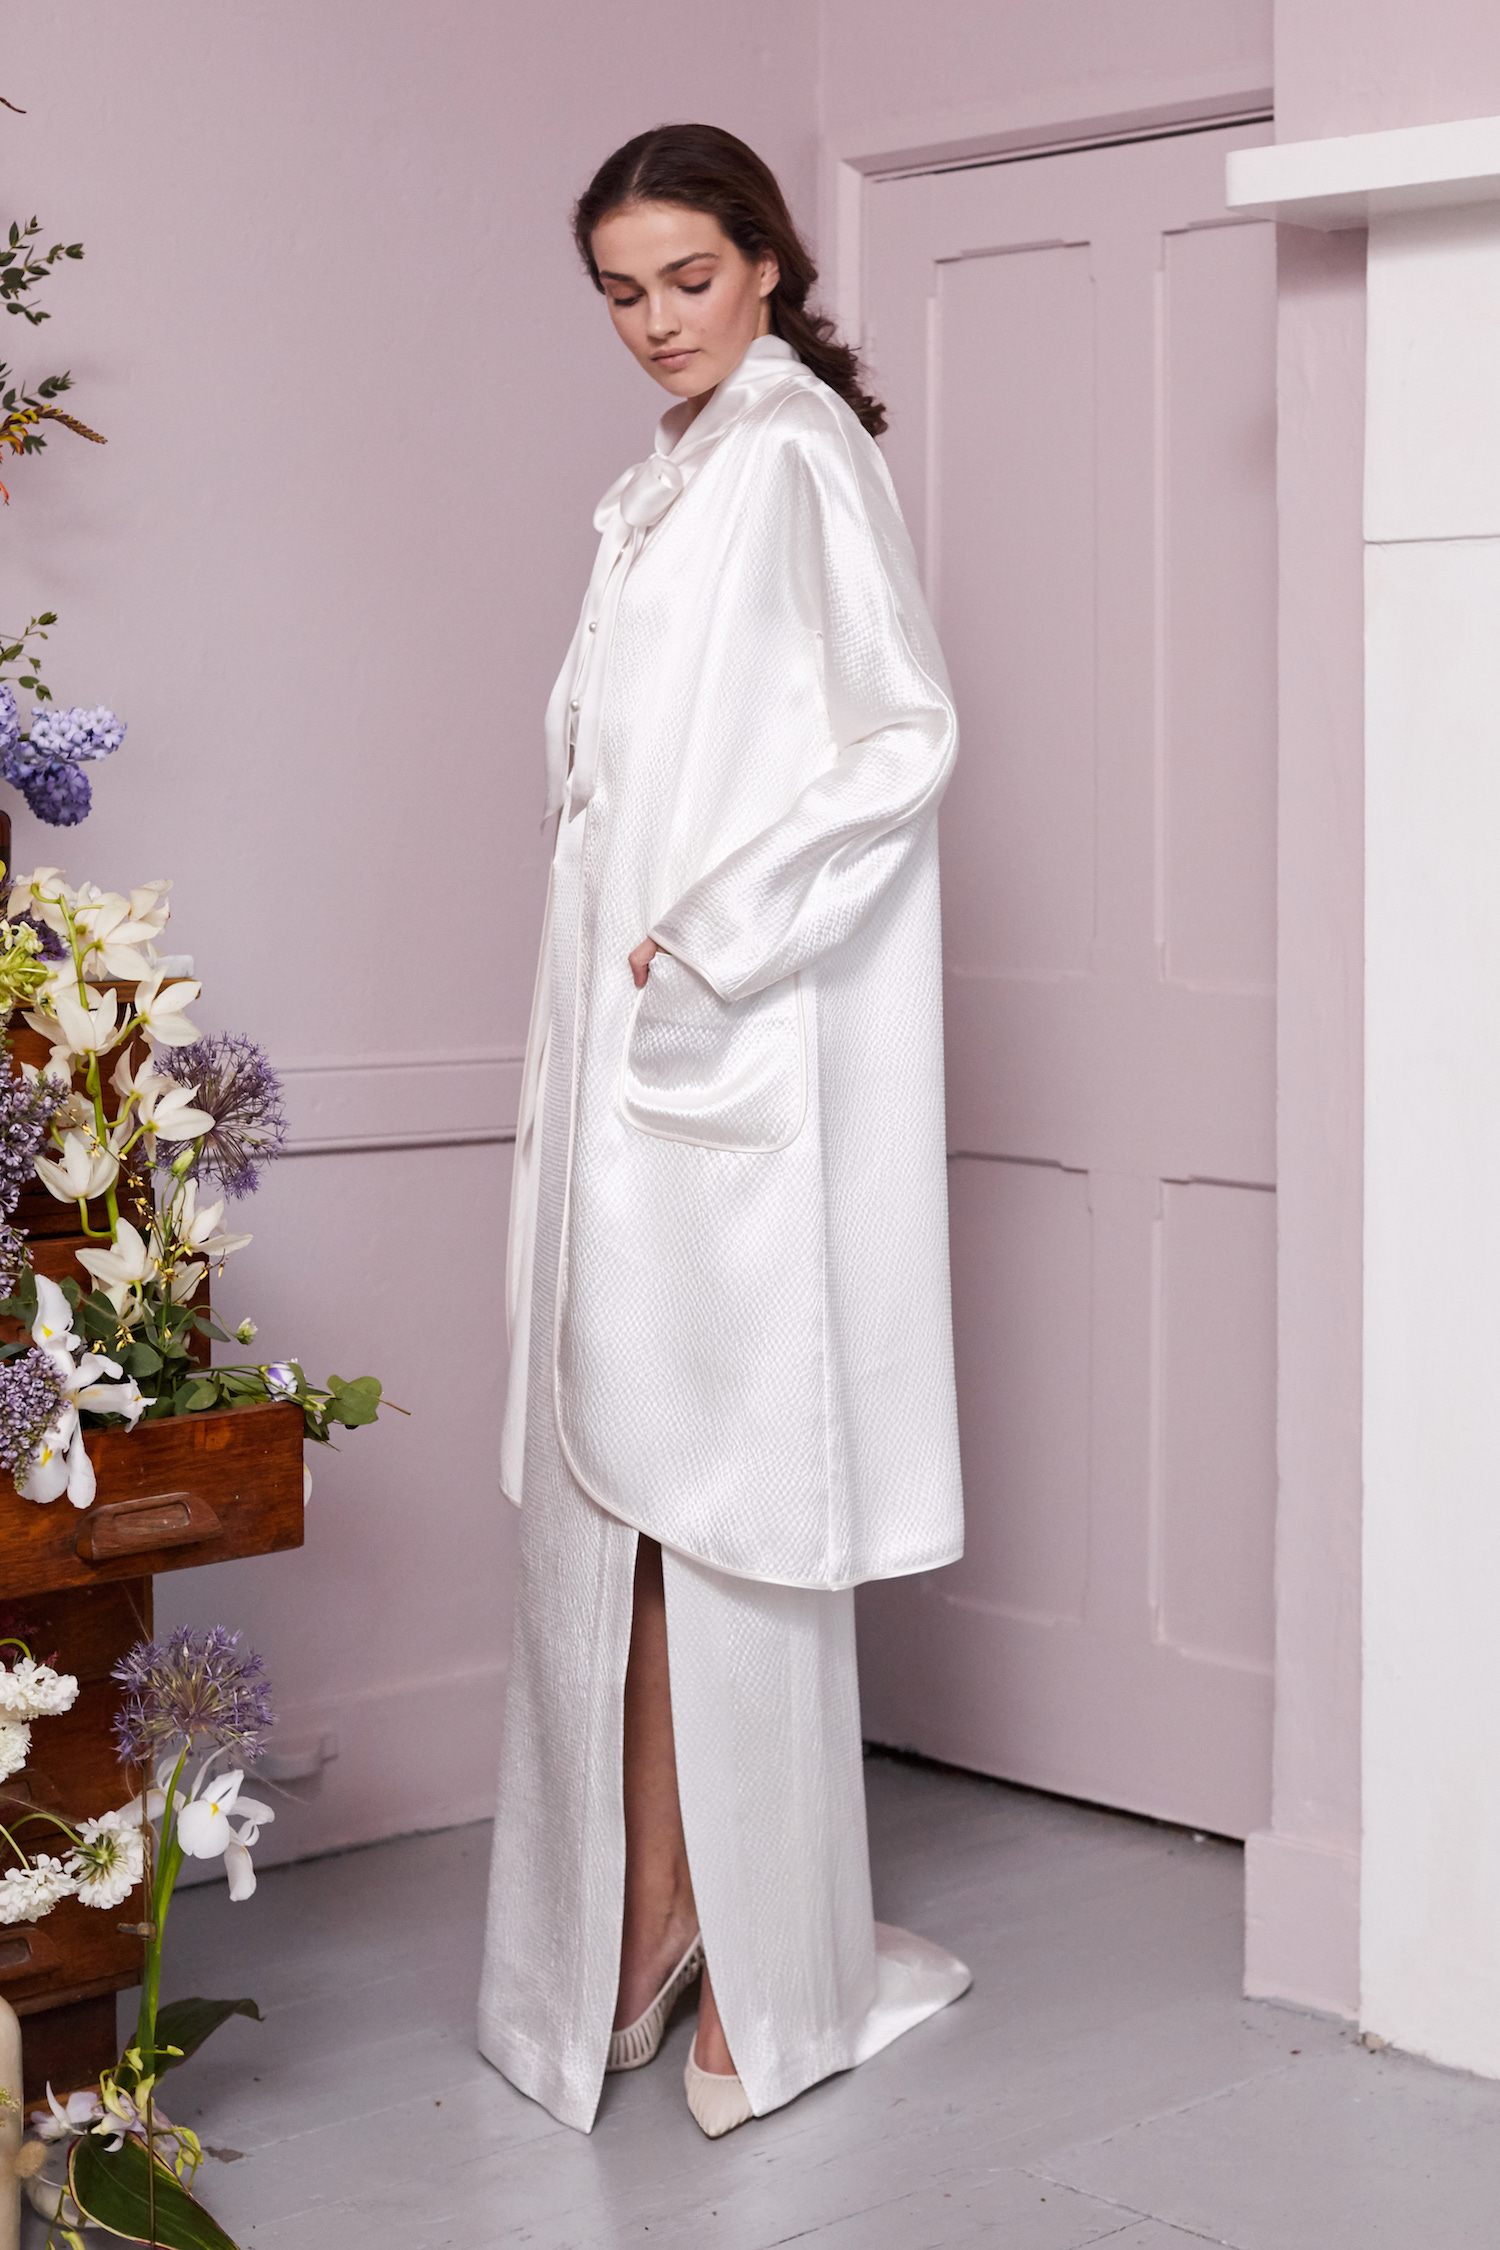 ORKO JACKET, PARRY BLOUSE & ORKO SKIRT | WEDDING DRESS BY HALFPENNY LONDON